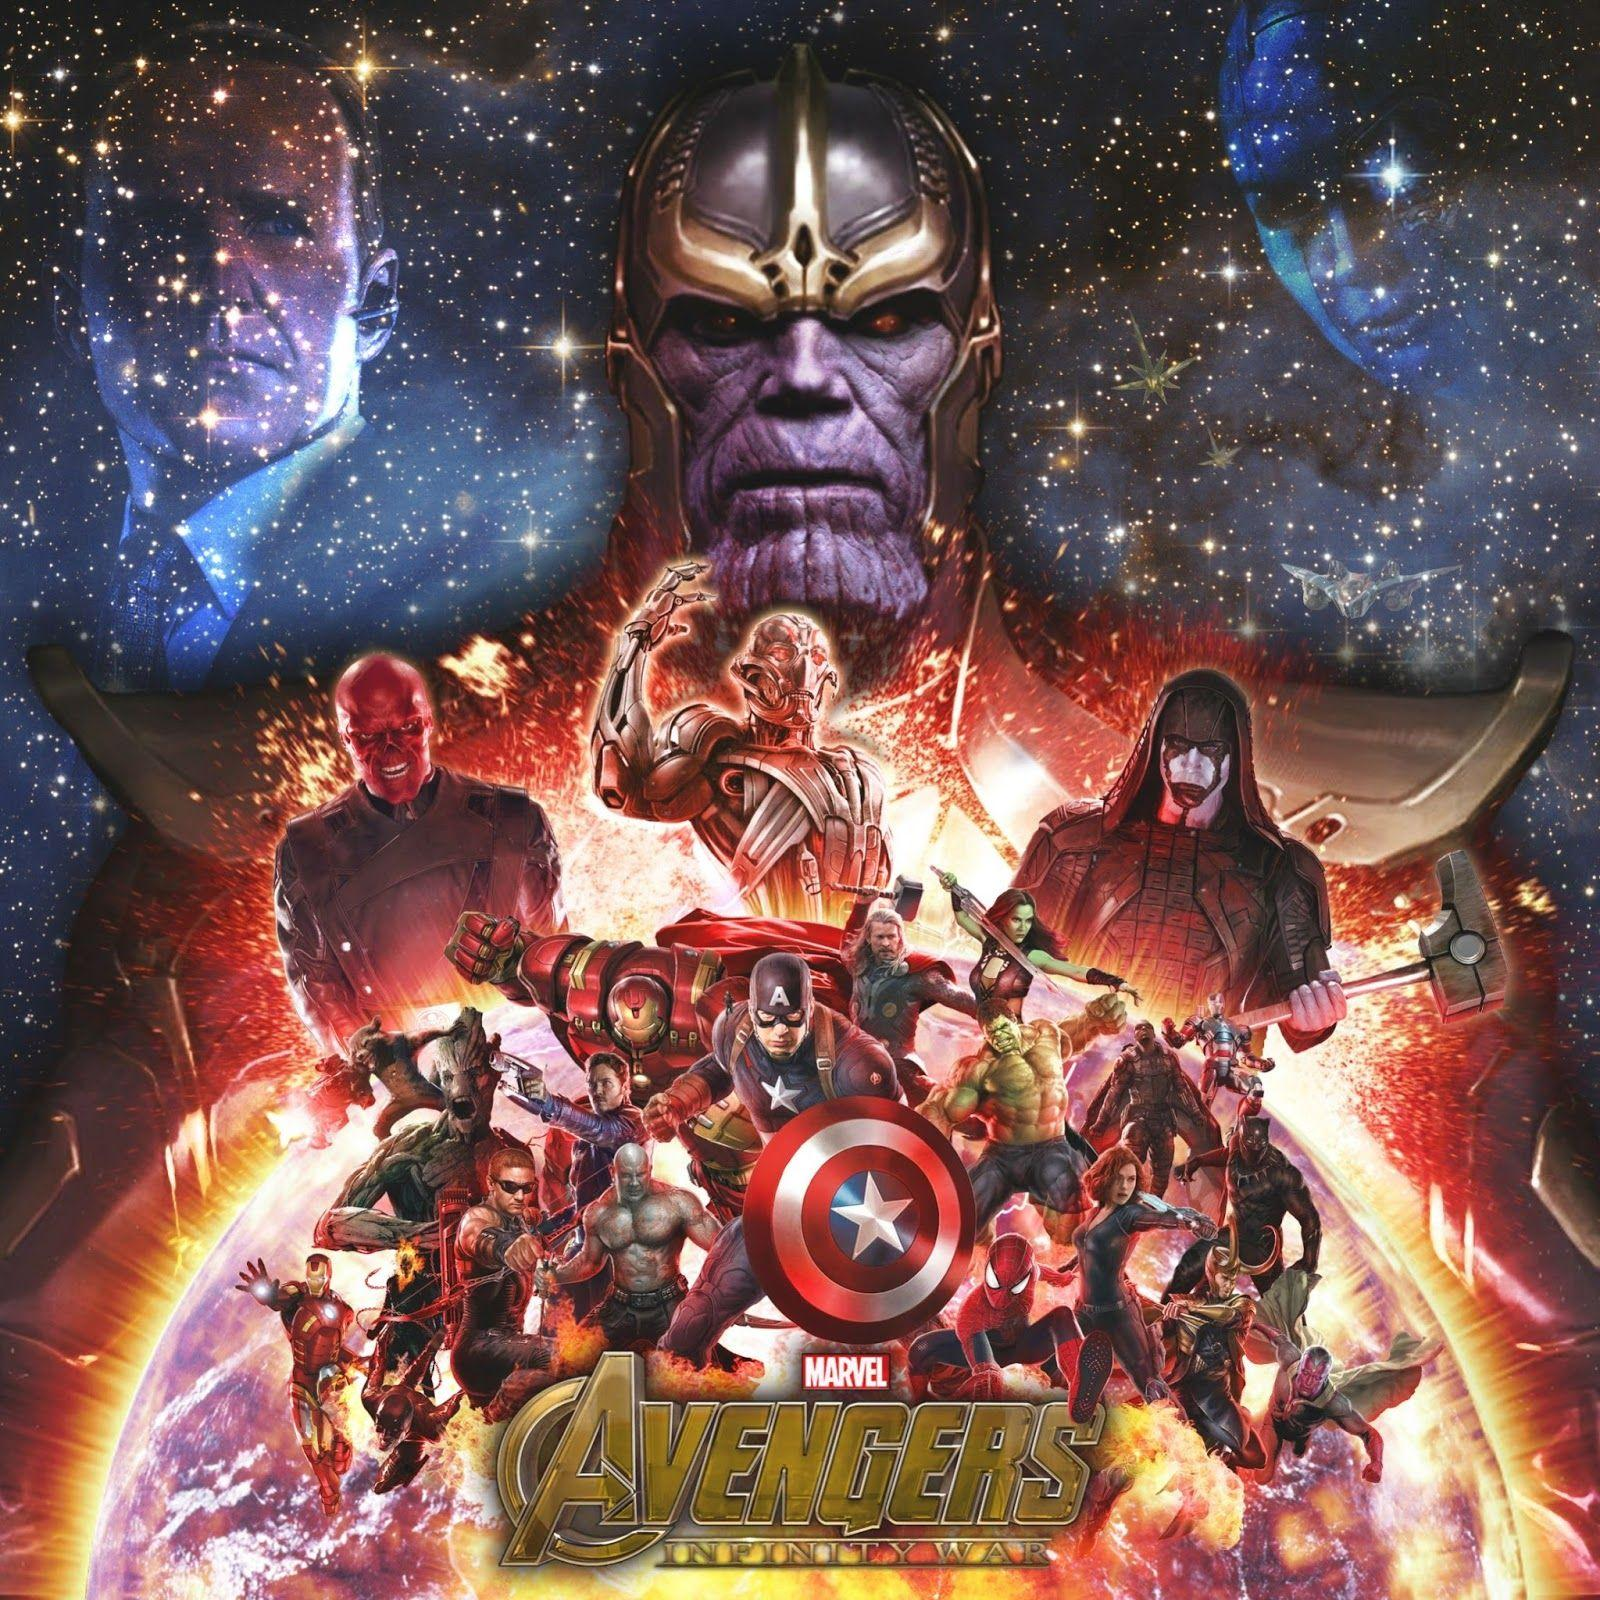 HD Wallpapers : Avengers İnfinity War HD Wallpapers